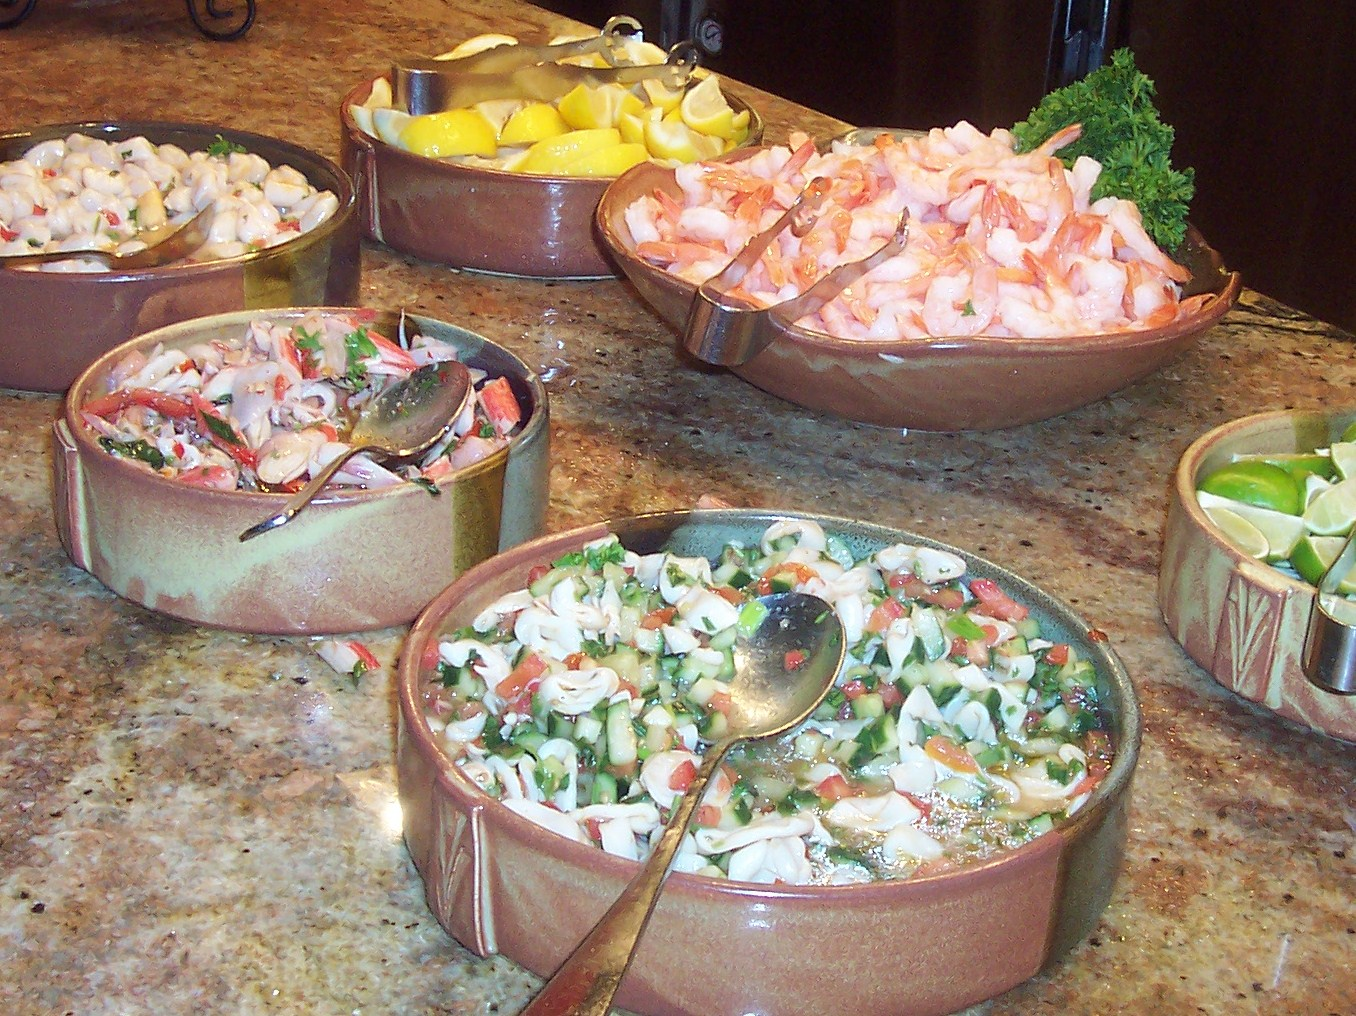 Valley view casino lobster buffet